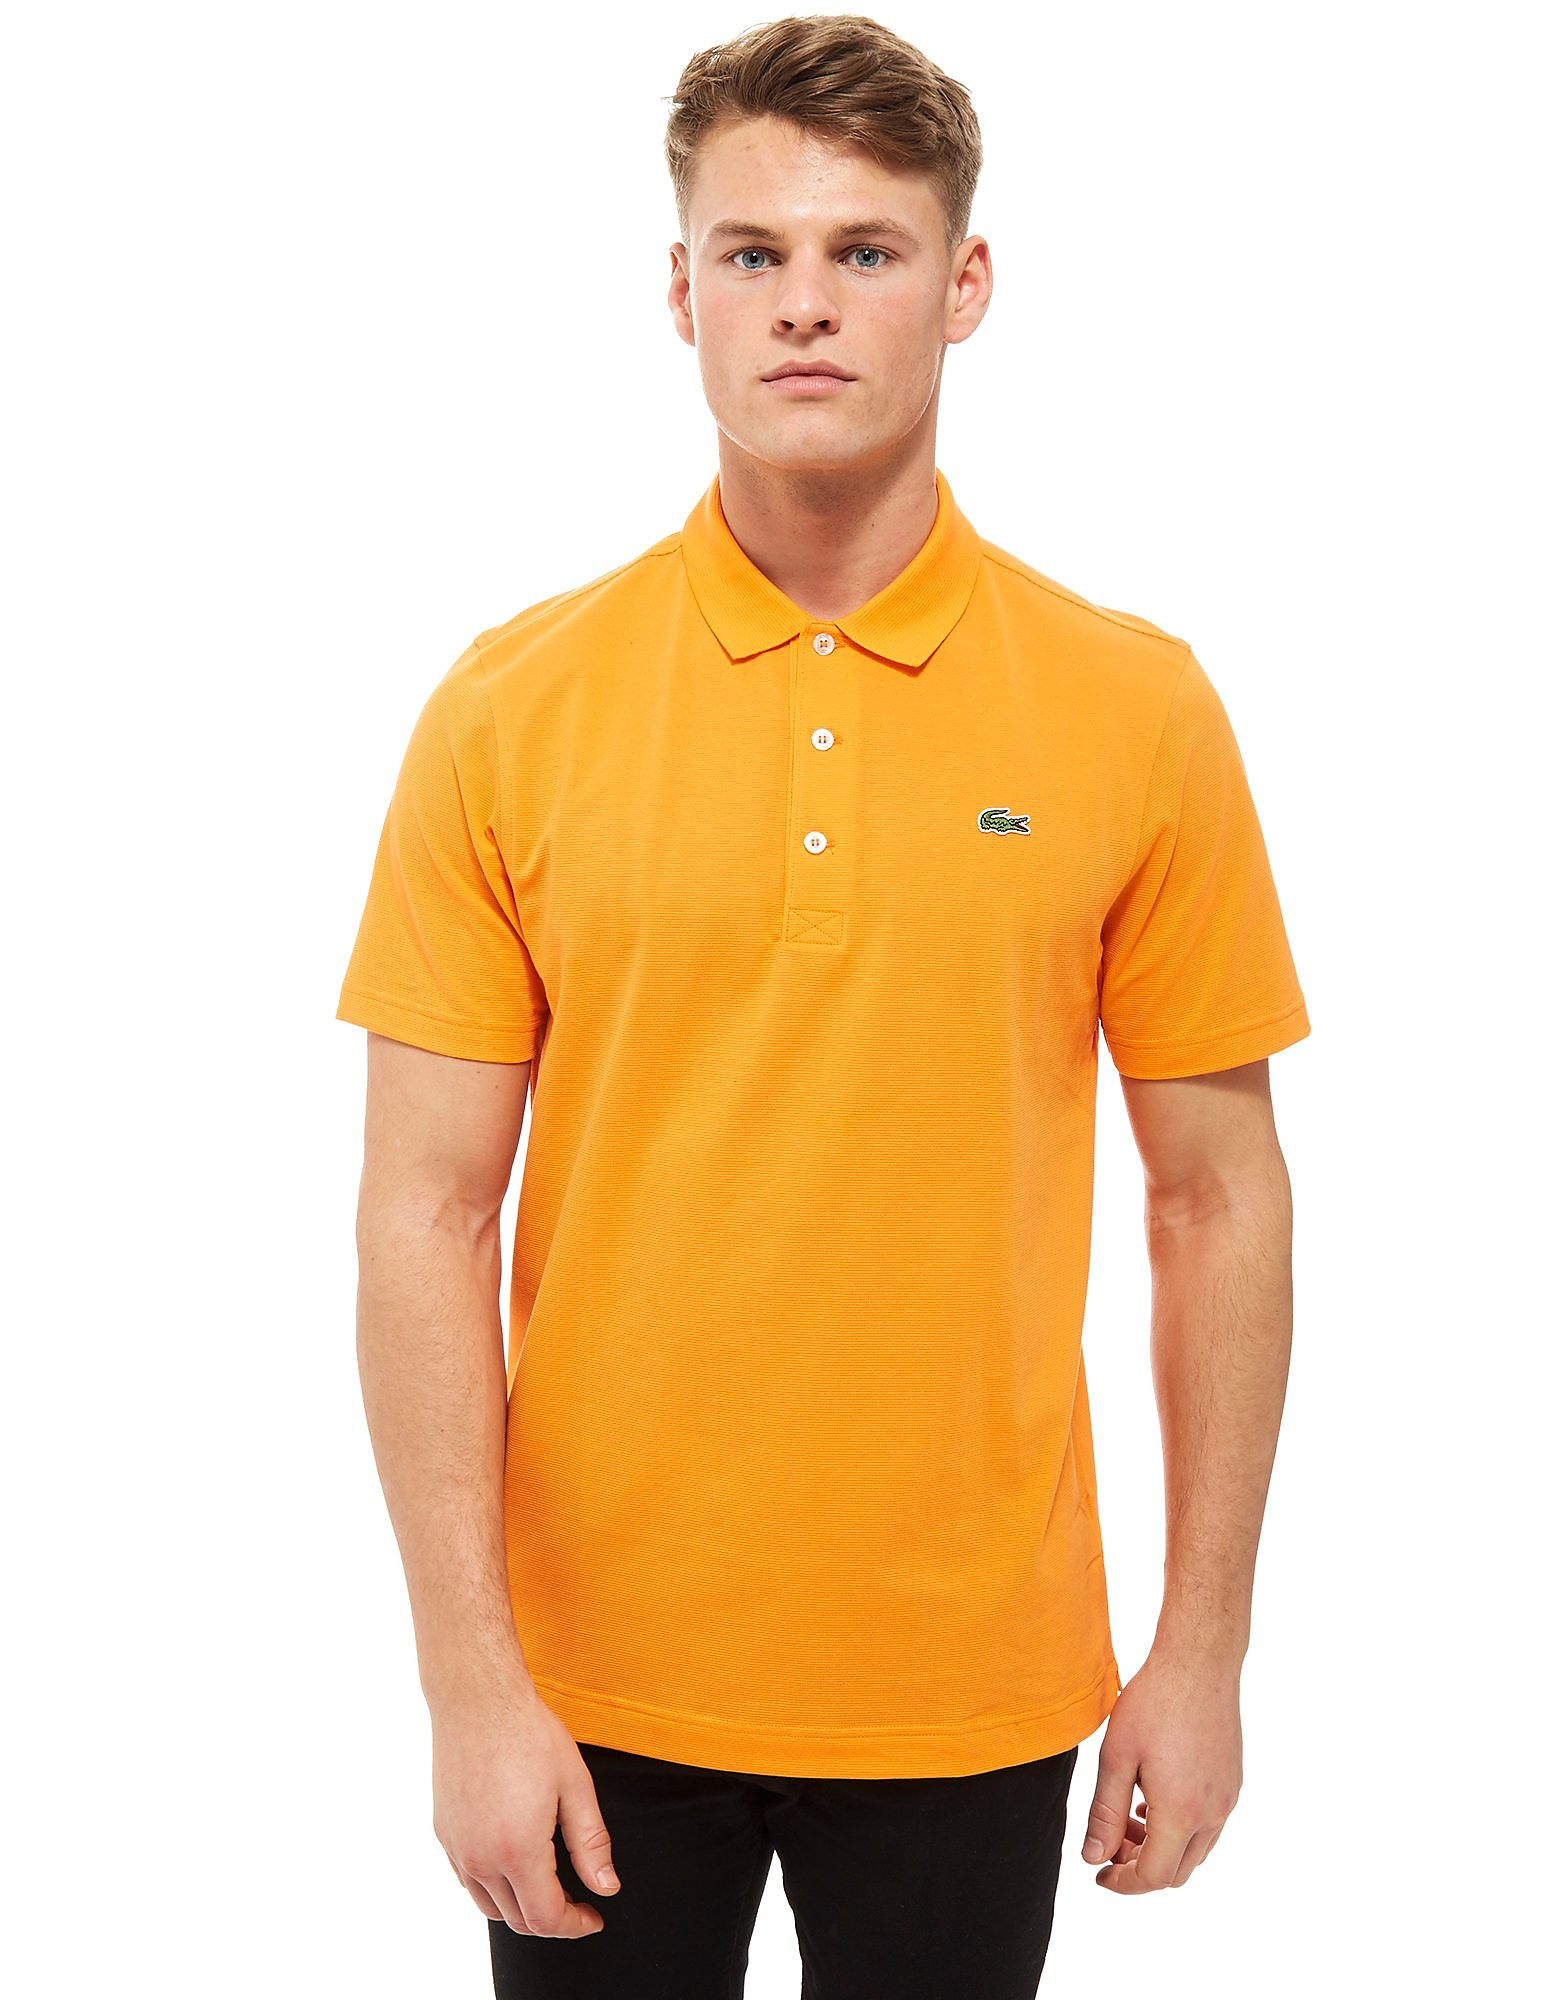 Lacoste Alligator Polo Shirt Heren - Apricot - Heren